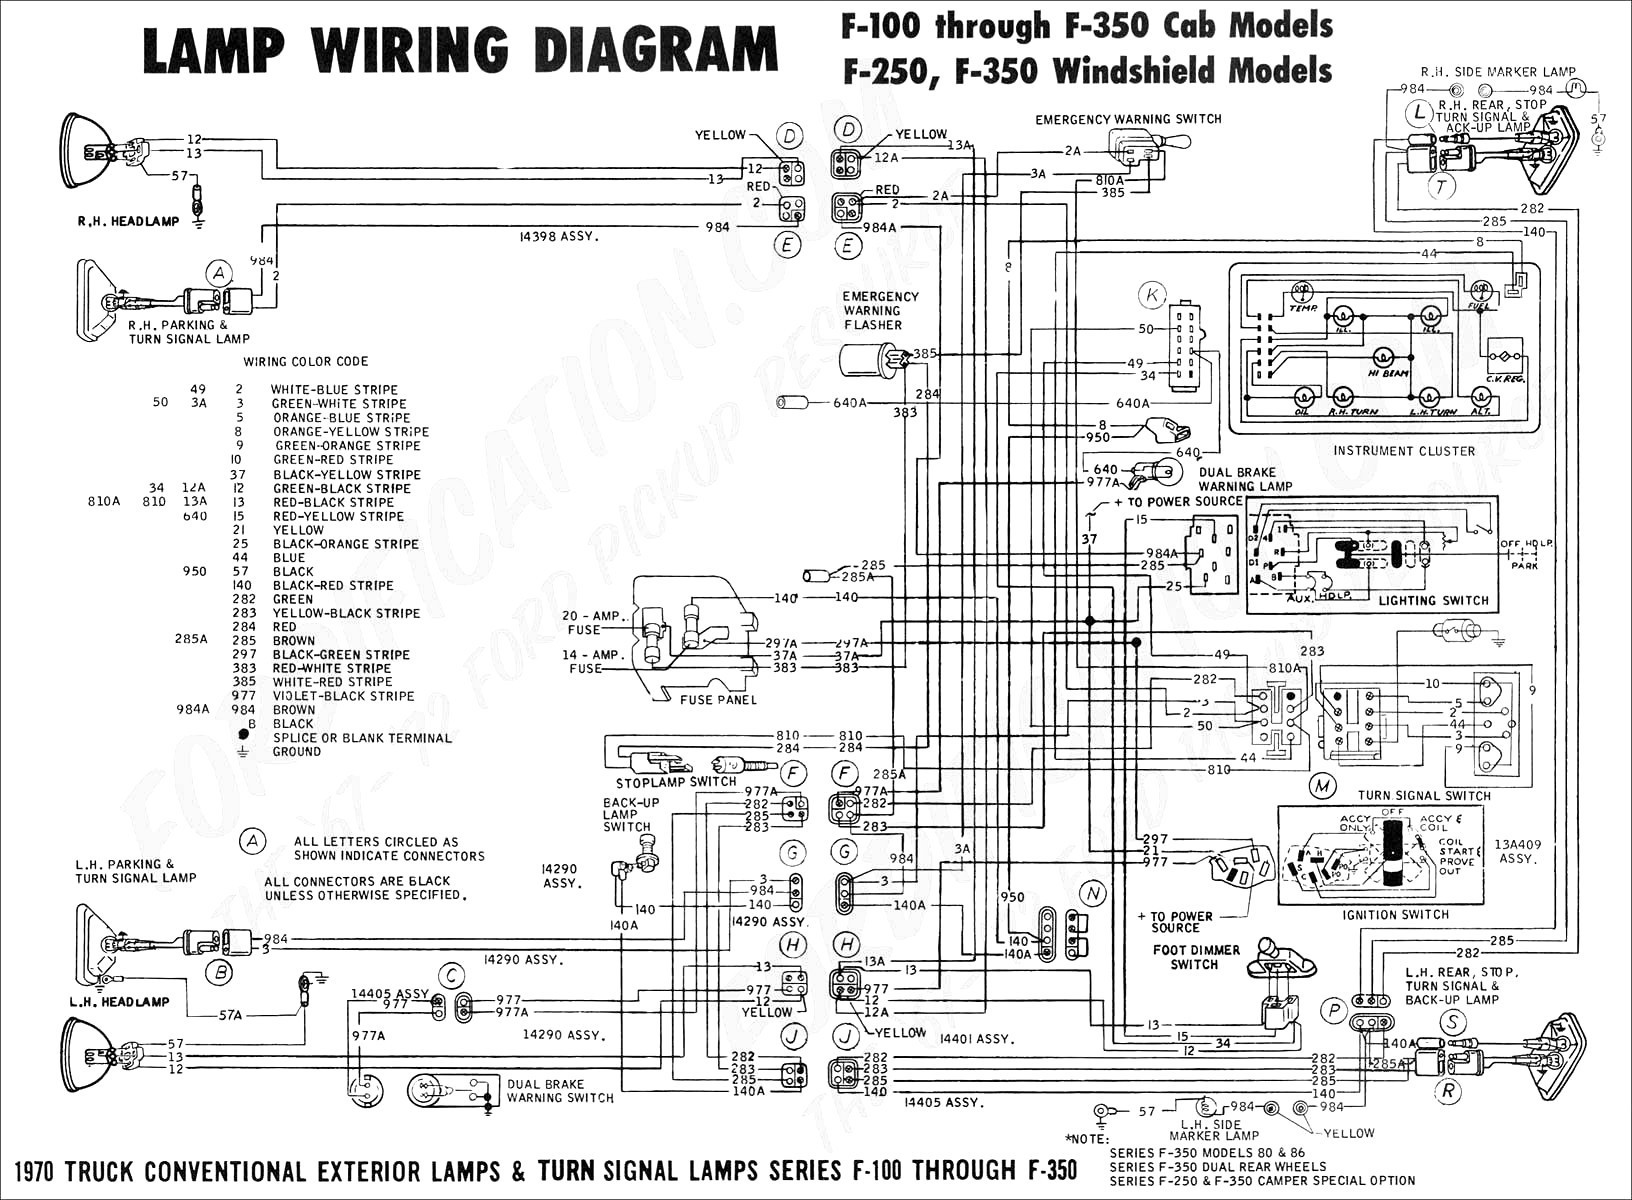 1999 Cadillac Sts Fuse Box Deville Wiring Diagram Reinvent Your Radio Electrical Diagrams Rh Wiringforall Today 1998 Seville